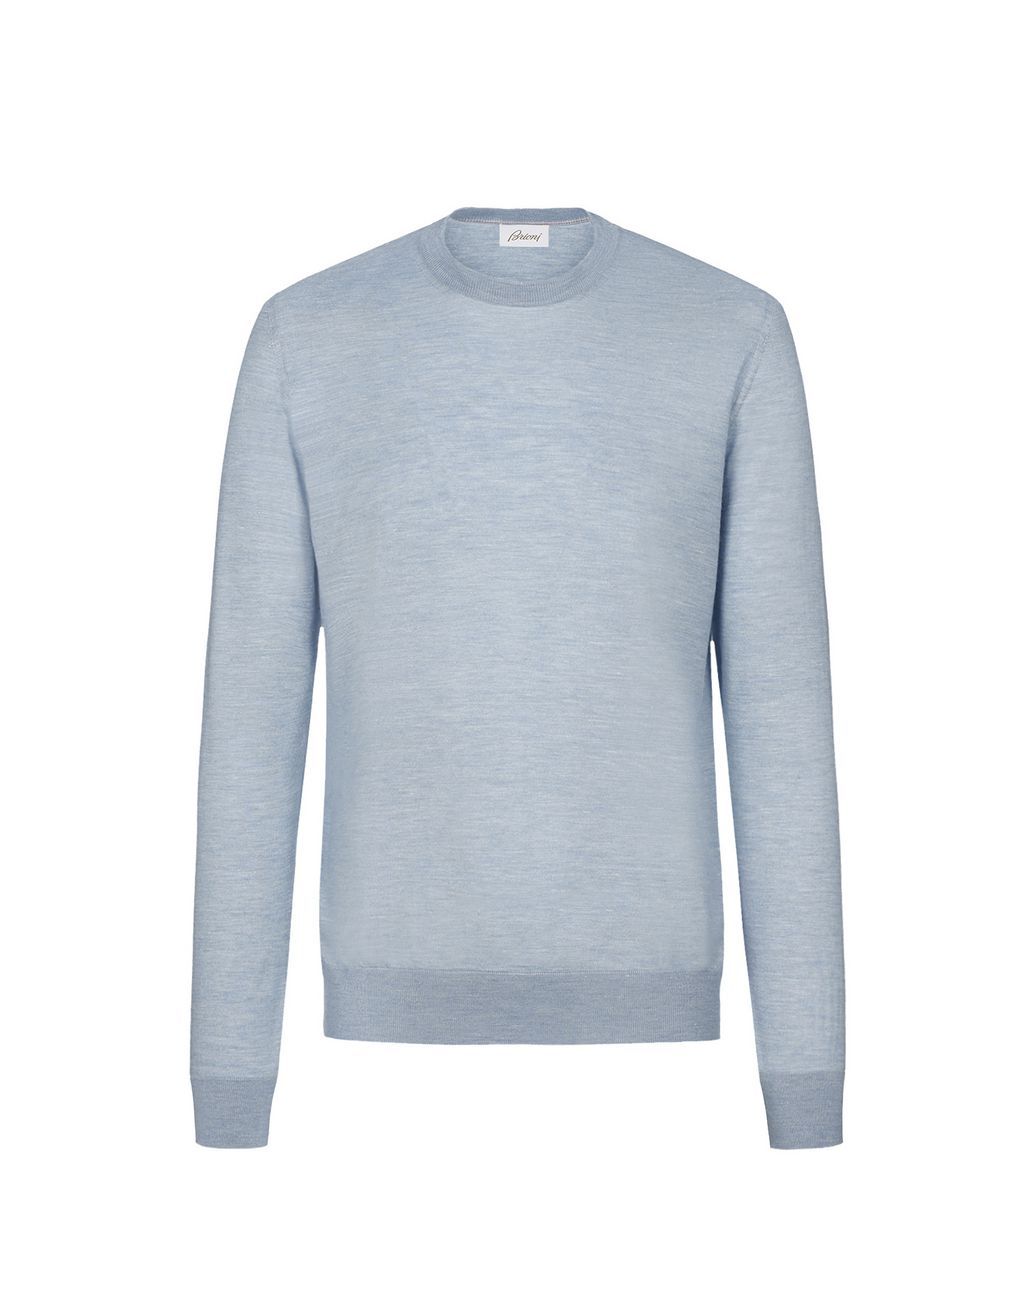 BRIONI Light Blue Crew Neck Sweater Knitwear Man f